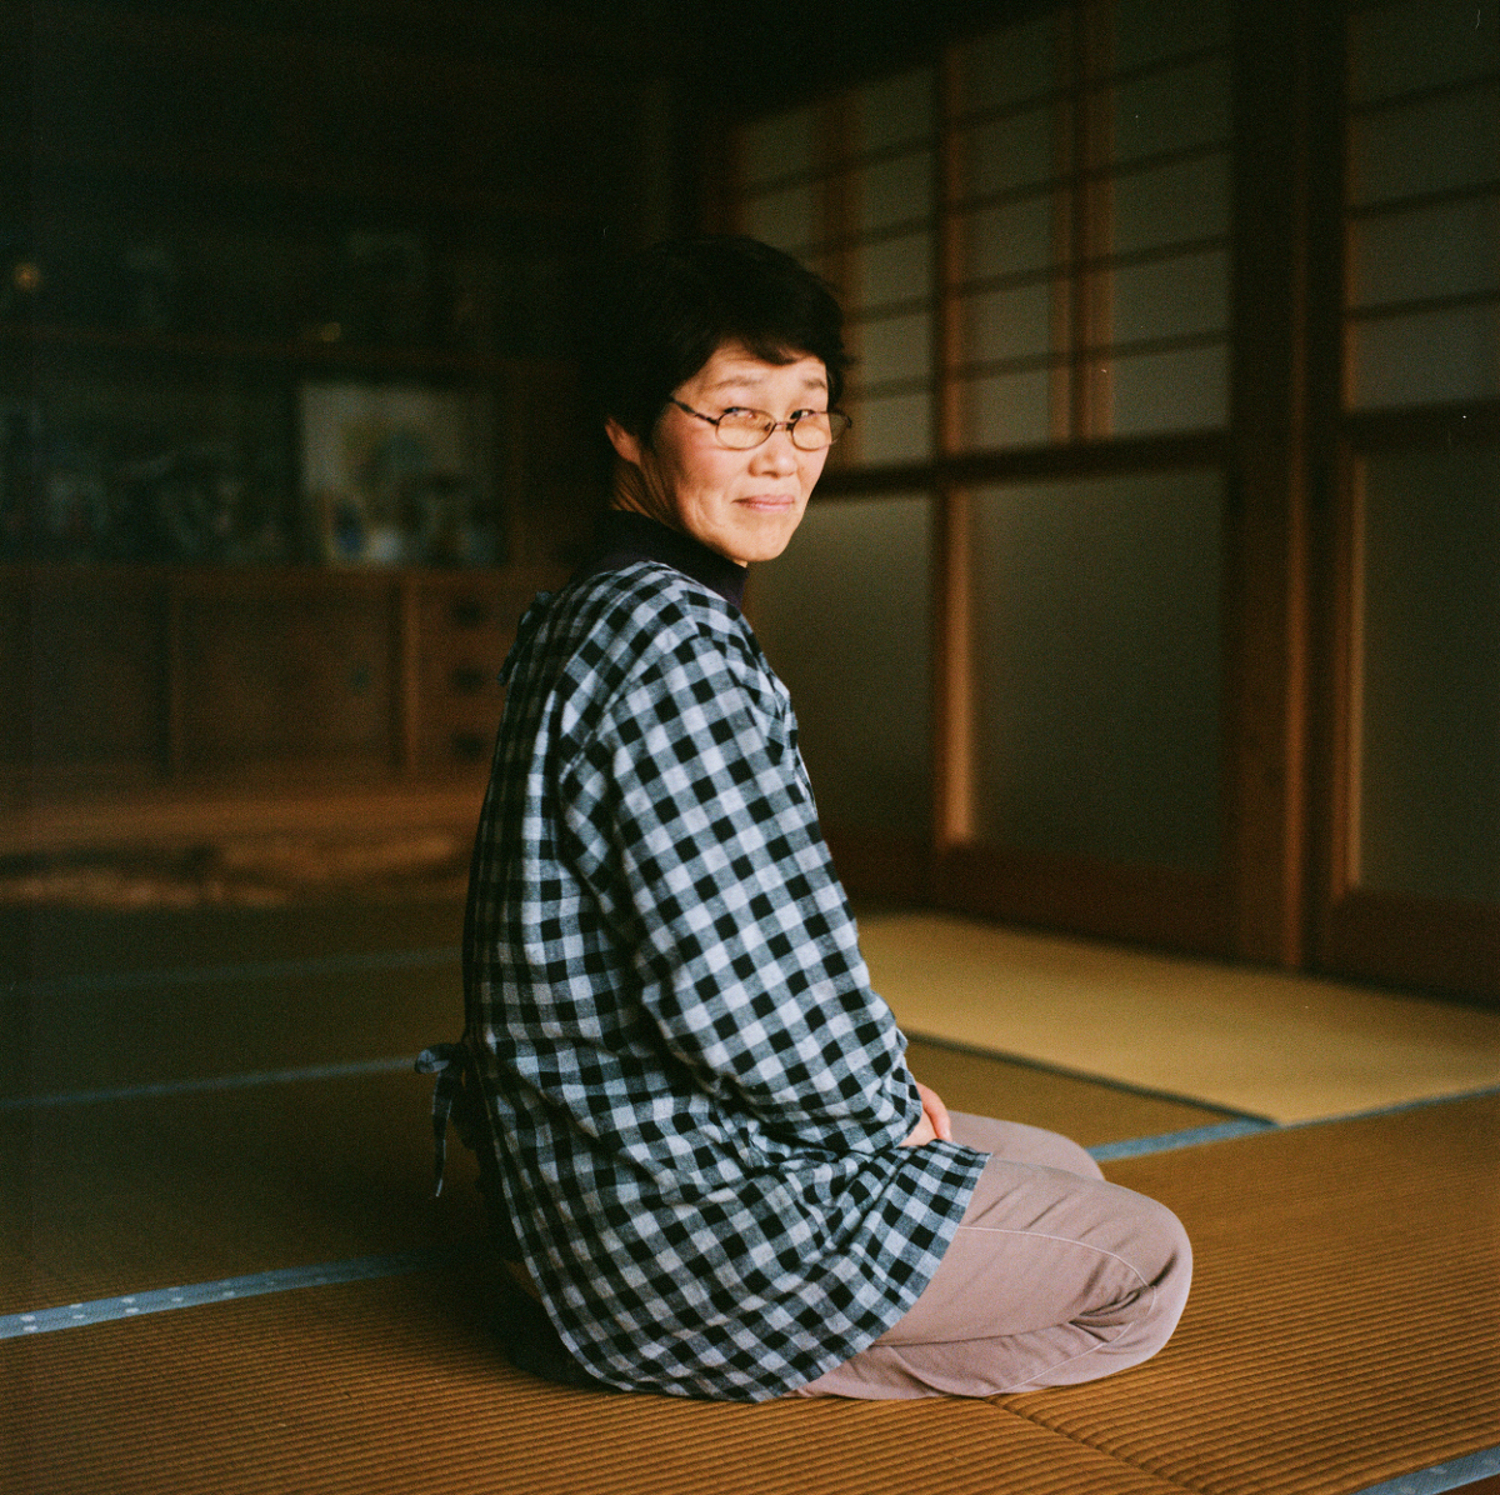 This old woman returned with her husband in April of 2015, with the city's authorization. She and her husband, a carpenter, preferred to come back, even though they knew that none of their friends or neighbors would return. Amongst these friends and neighbours, many have had their houses demolished. She and her husband felt unwanted by the people of Iwaki when living there in three temporary houses. Her mother-in-law died two years after the disaster, in her temporary house, because of stress she says. Her children and grandchildren decided to stay permanently in Iwaki.